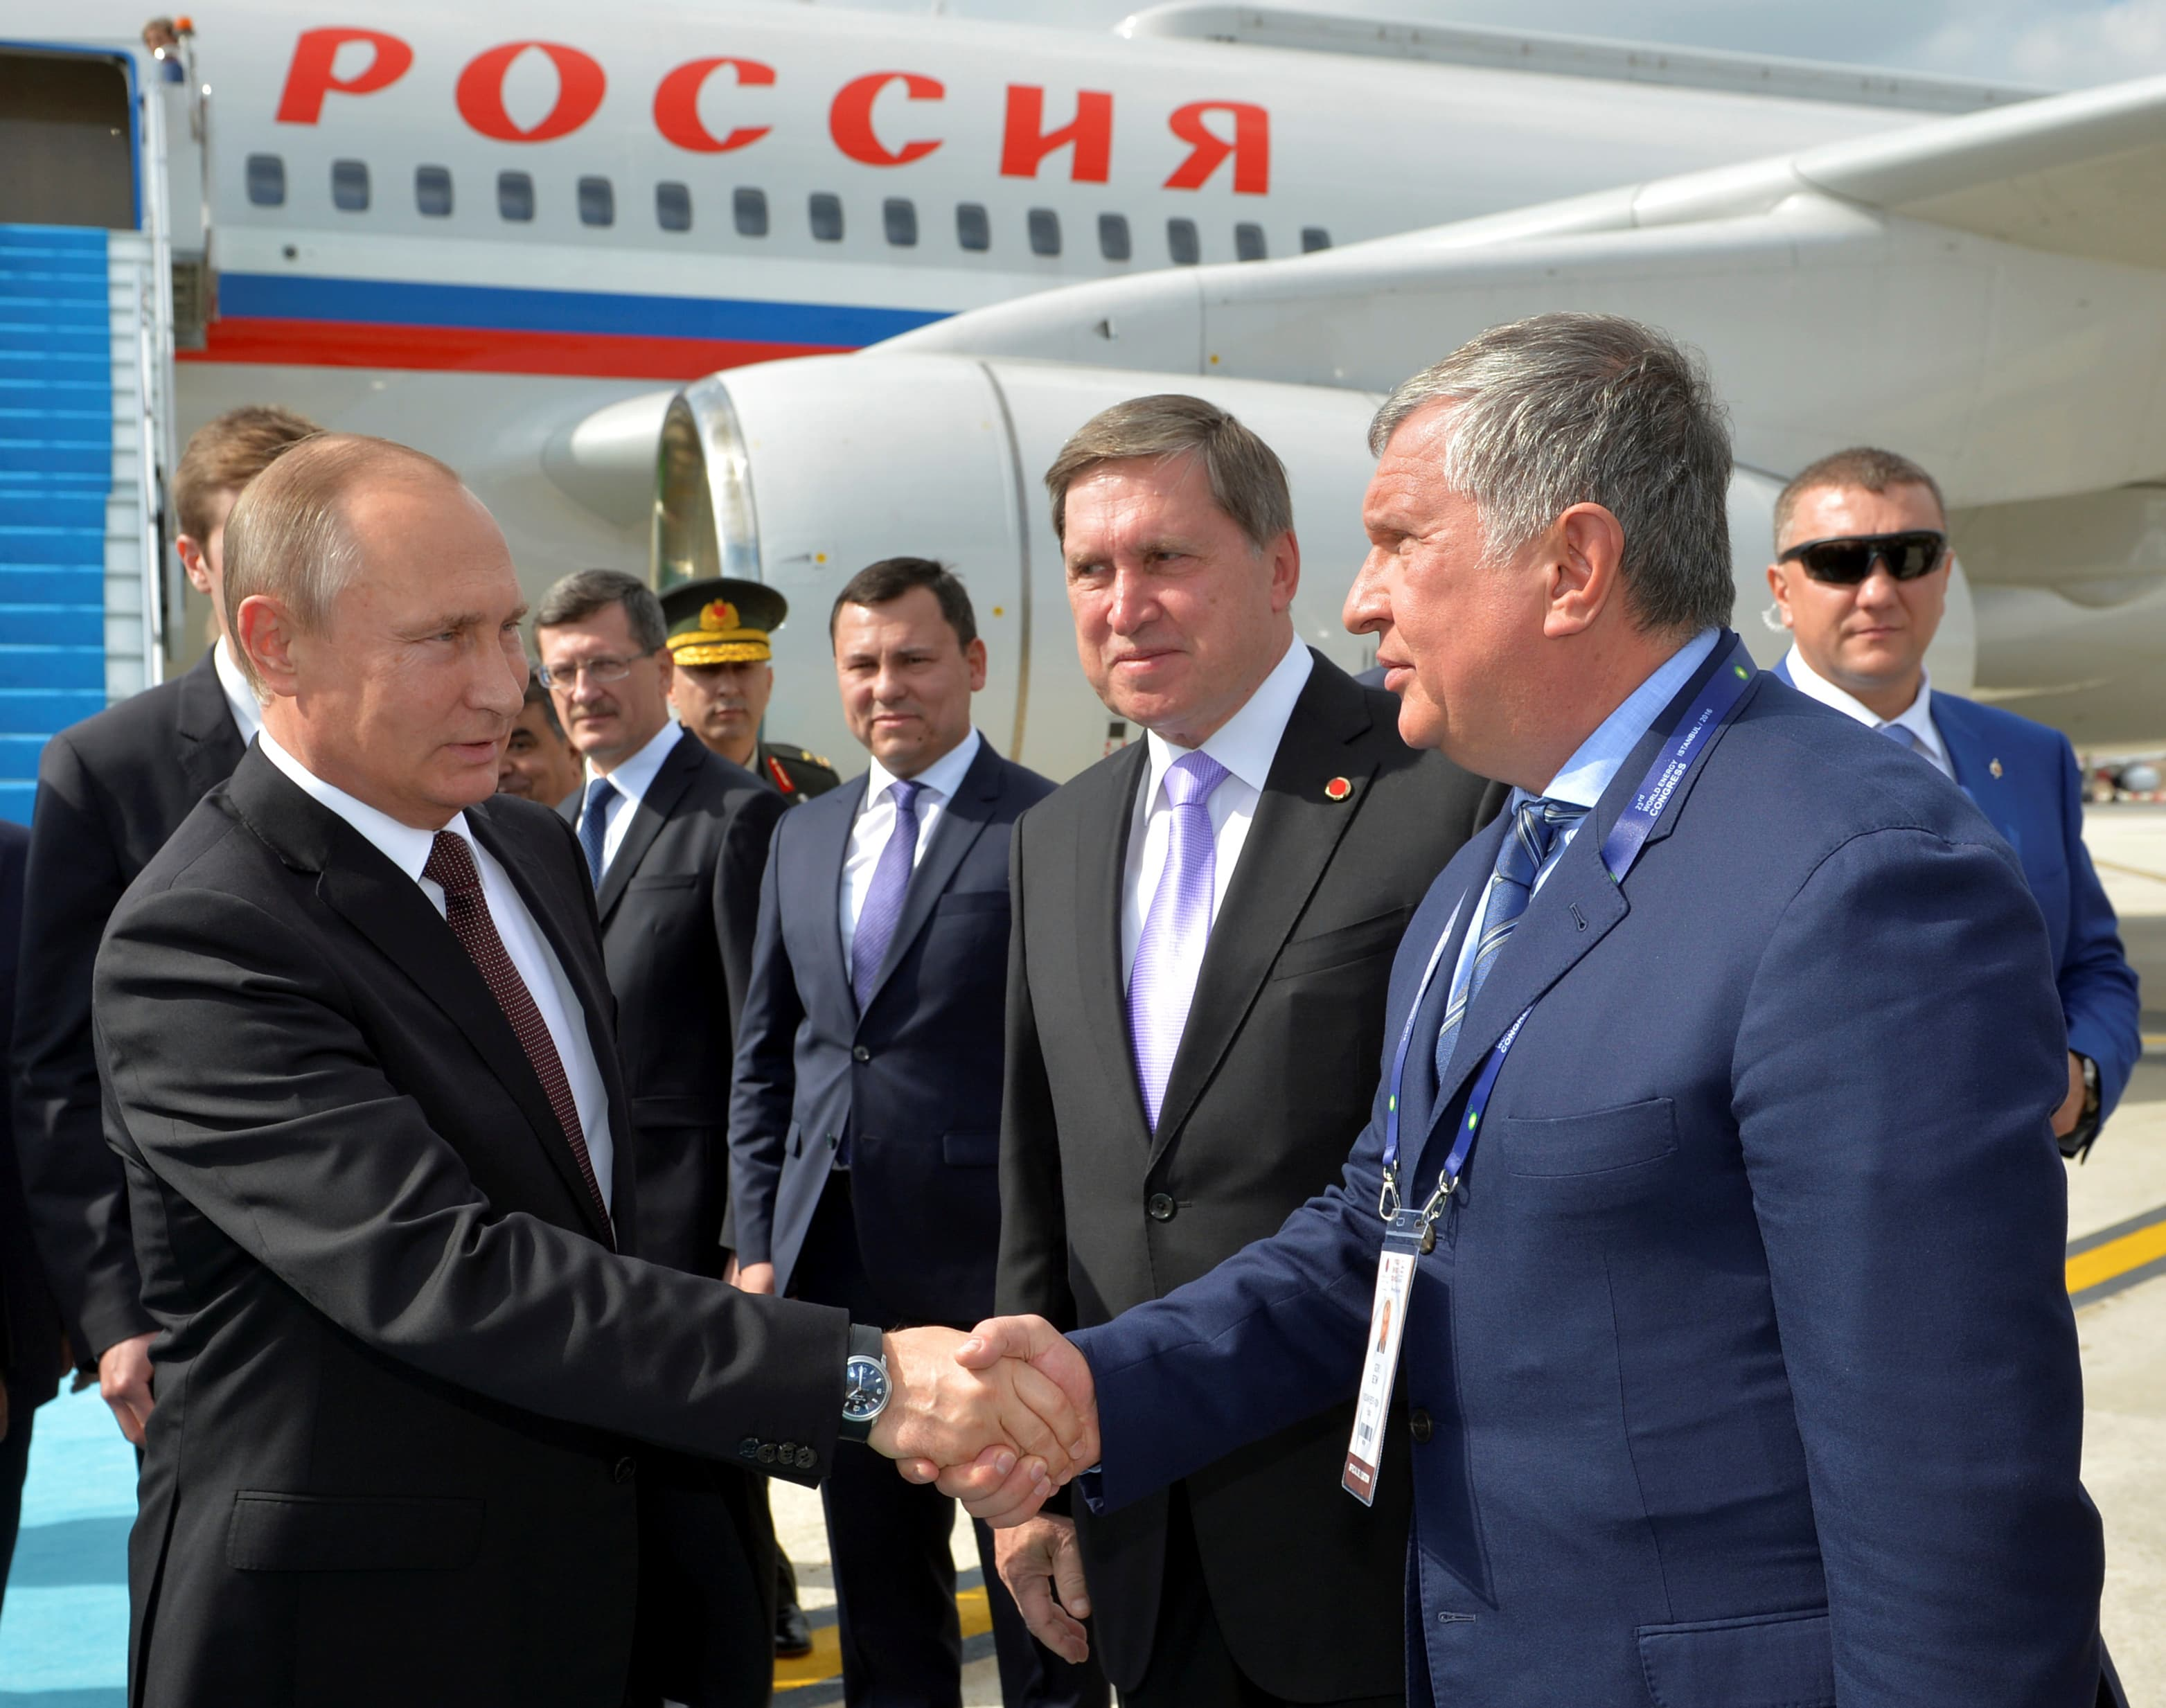 The United States imposed sanctions against Sechin, Volodin and Kozak 04/28/2014 75